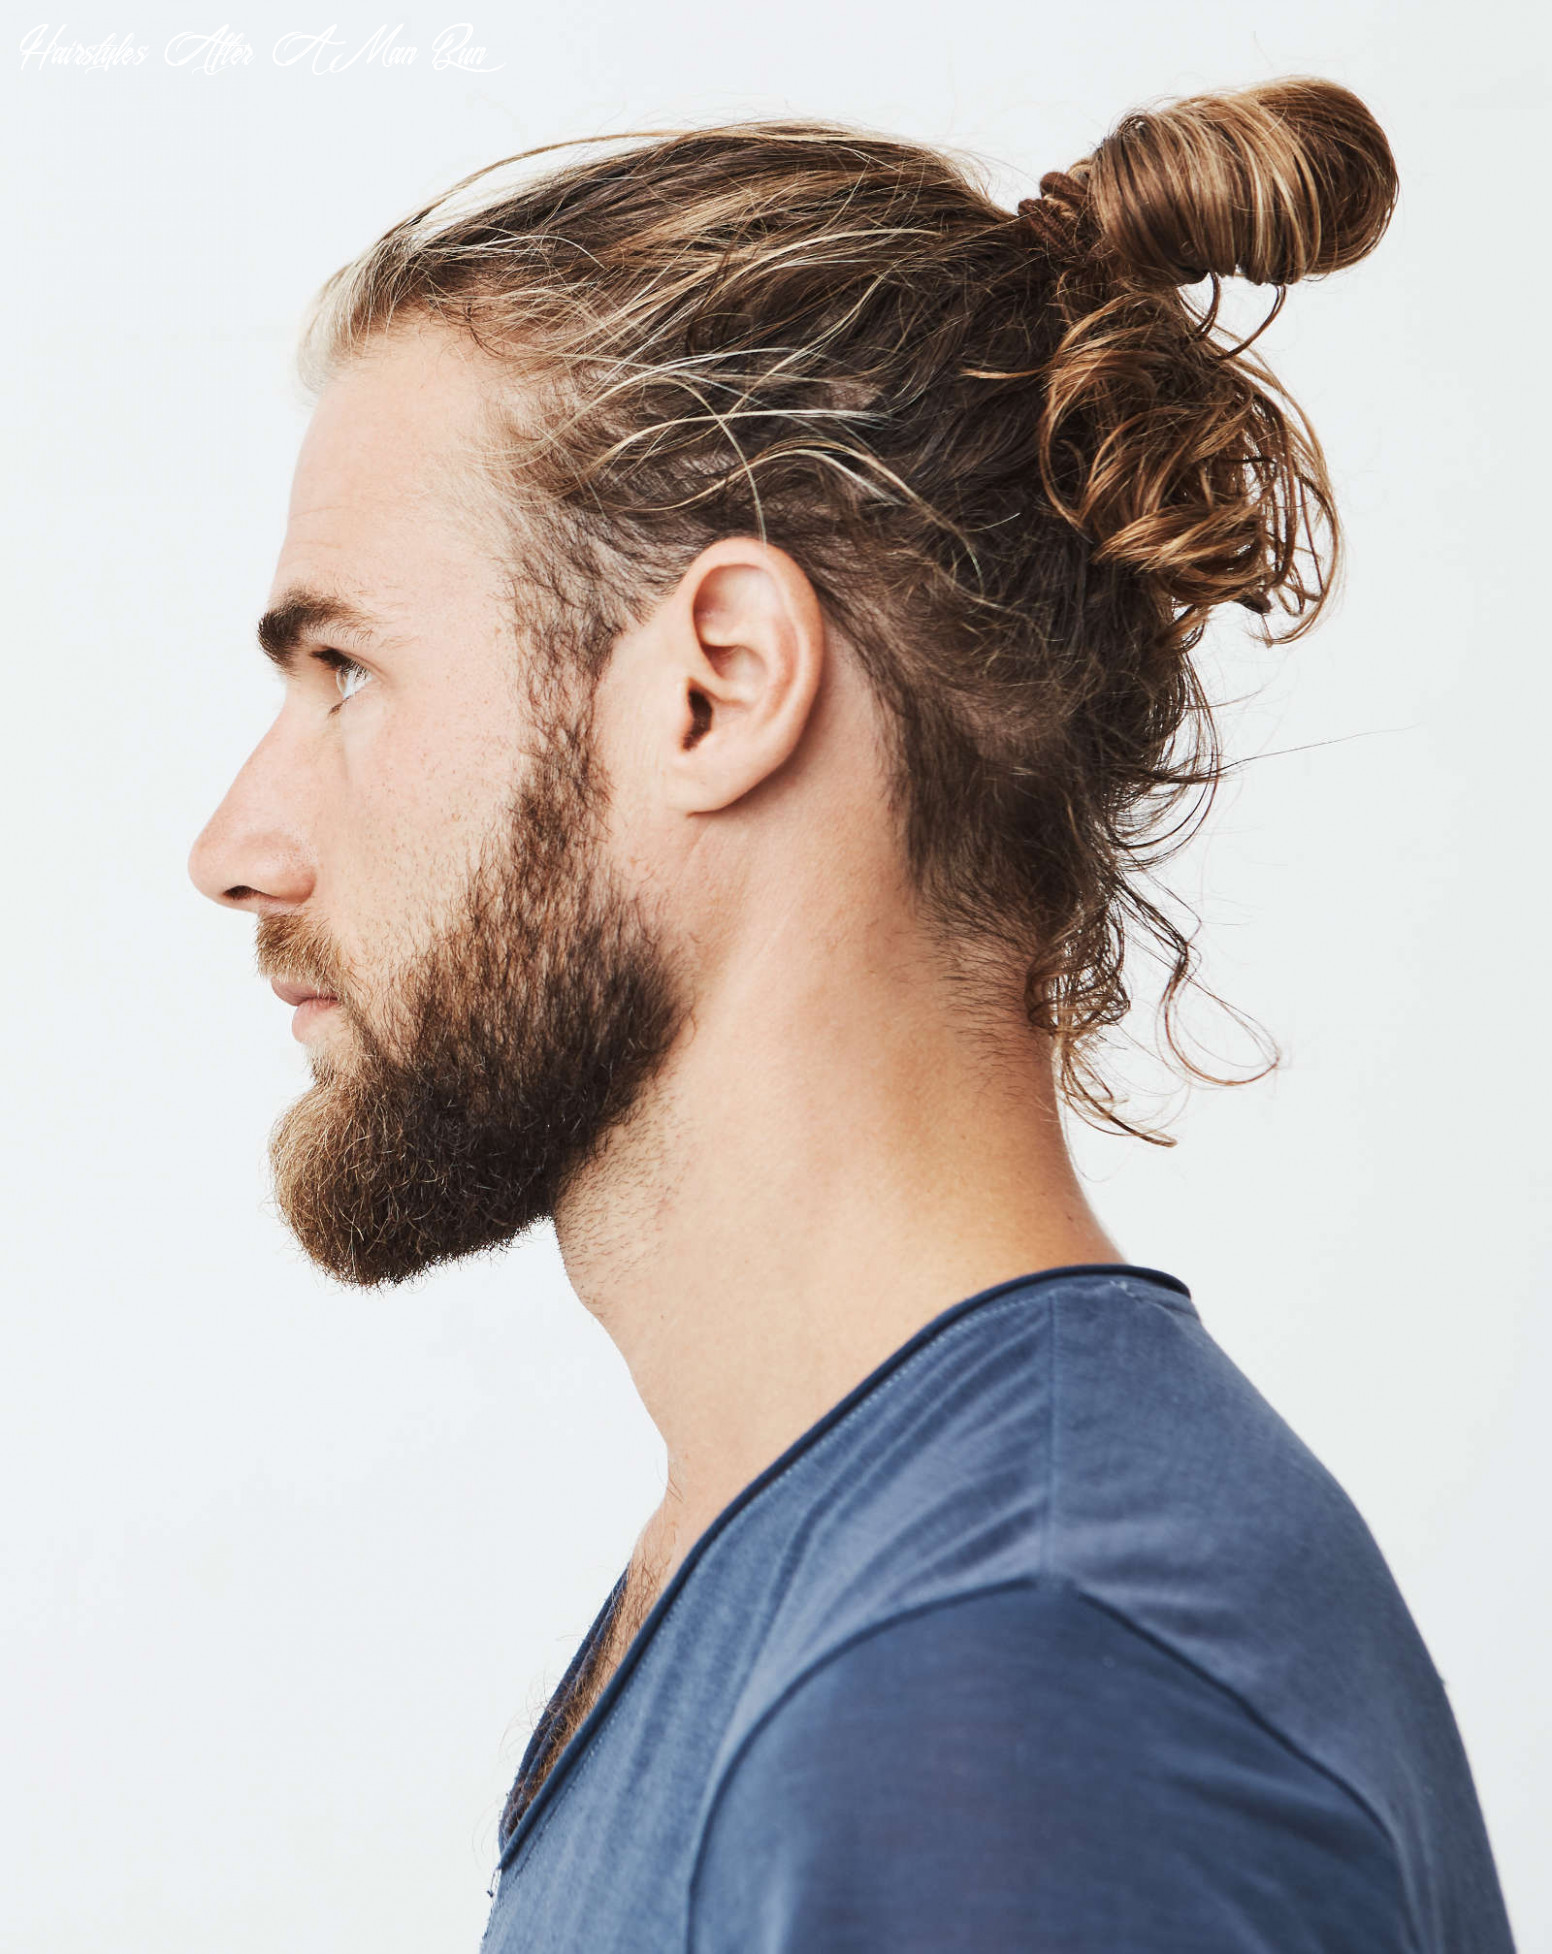 11 types of man bun hairstyles   gallery how to hairstyles after a man bun